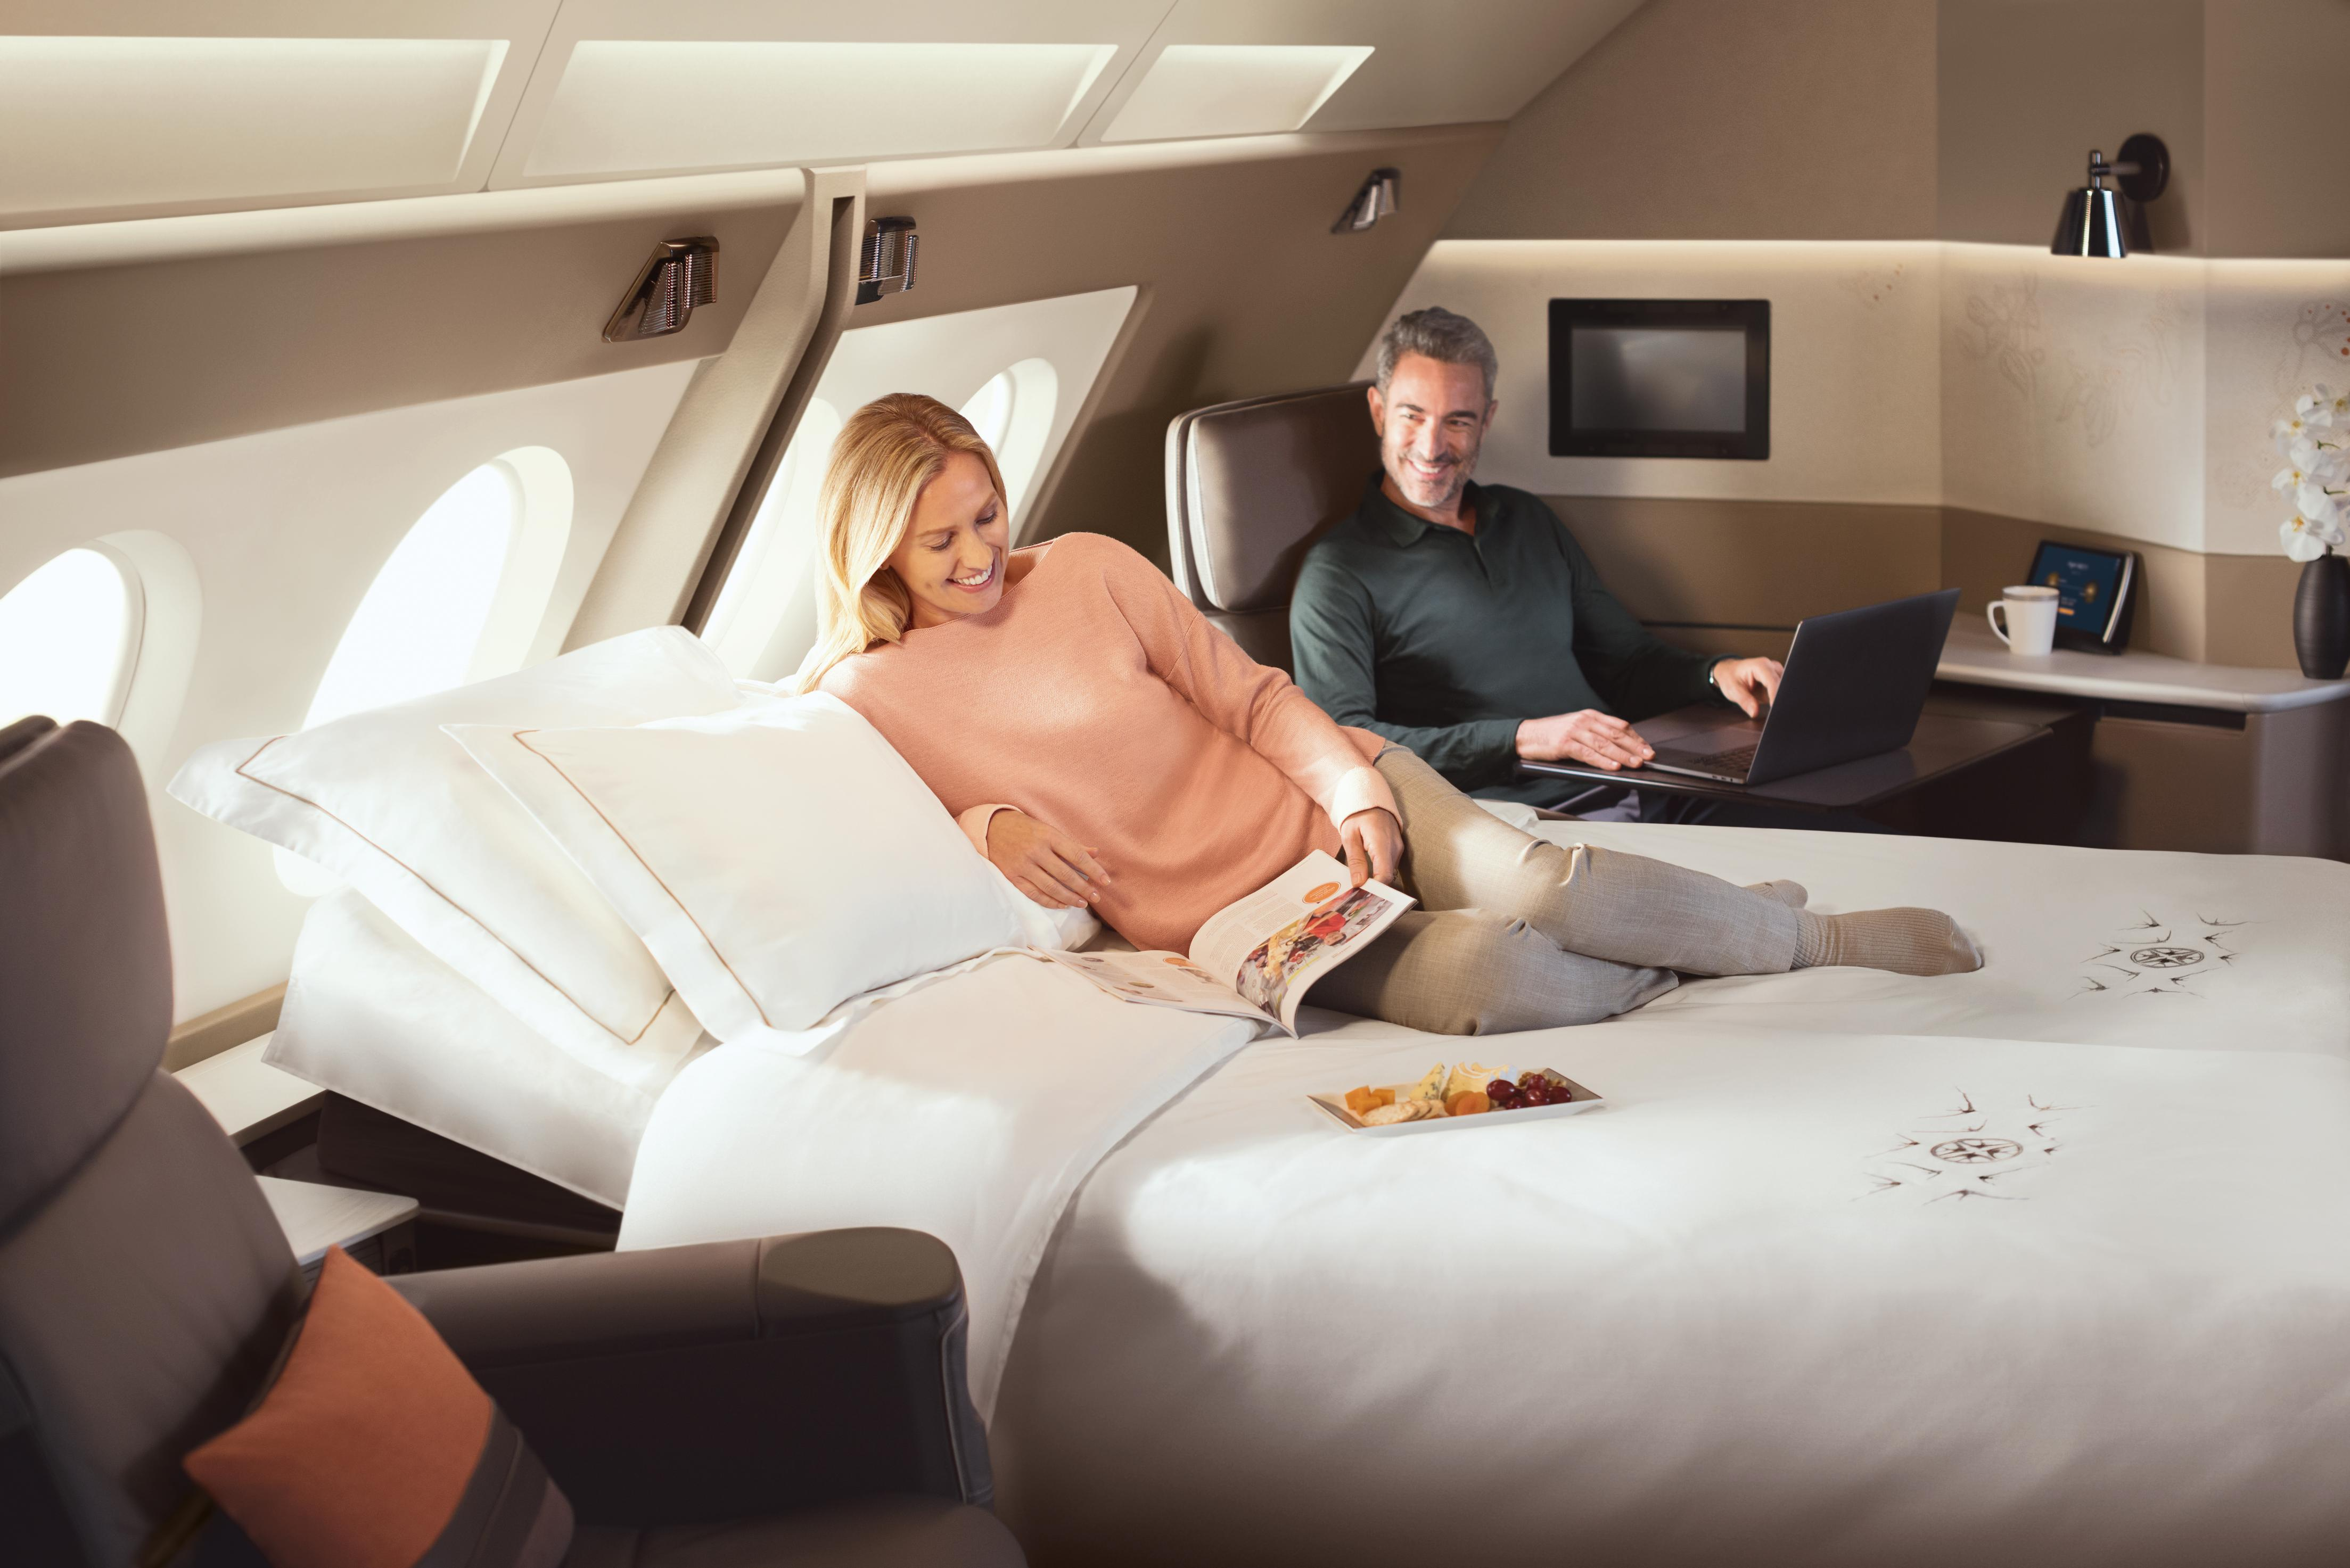 Superieur Singapore Airlinesu0027 Double Bed Suites Shake Up Flying   CNN ...